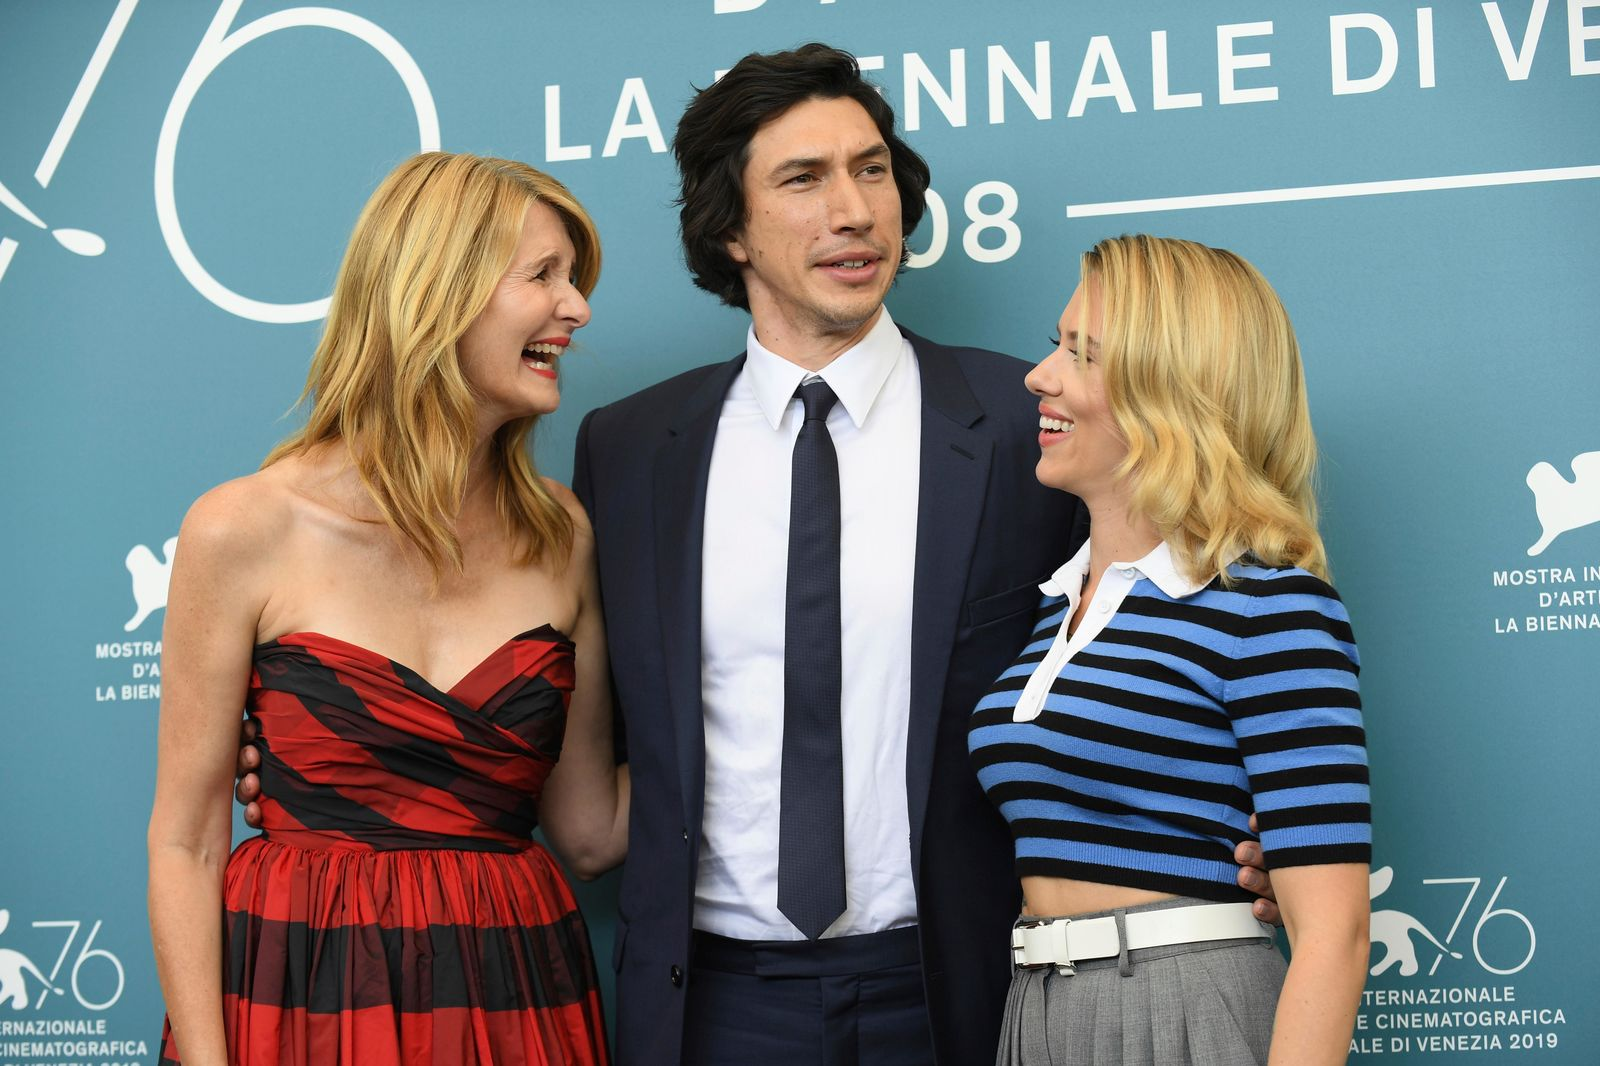 Actors Laura Dern, from left, Adam Driver and Scarlett Johansson pose for photographers at the photo call for the film 'Marriage Story' at the 76th edition of the Venice Film Festival in Venice, Italy, Thursday, Aug. 29, 2019. (Photo by Arthur Mola/Invision/AP)